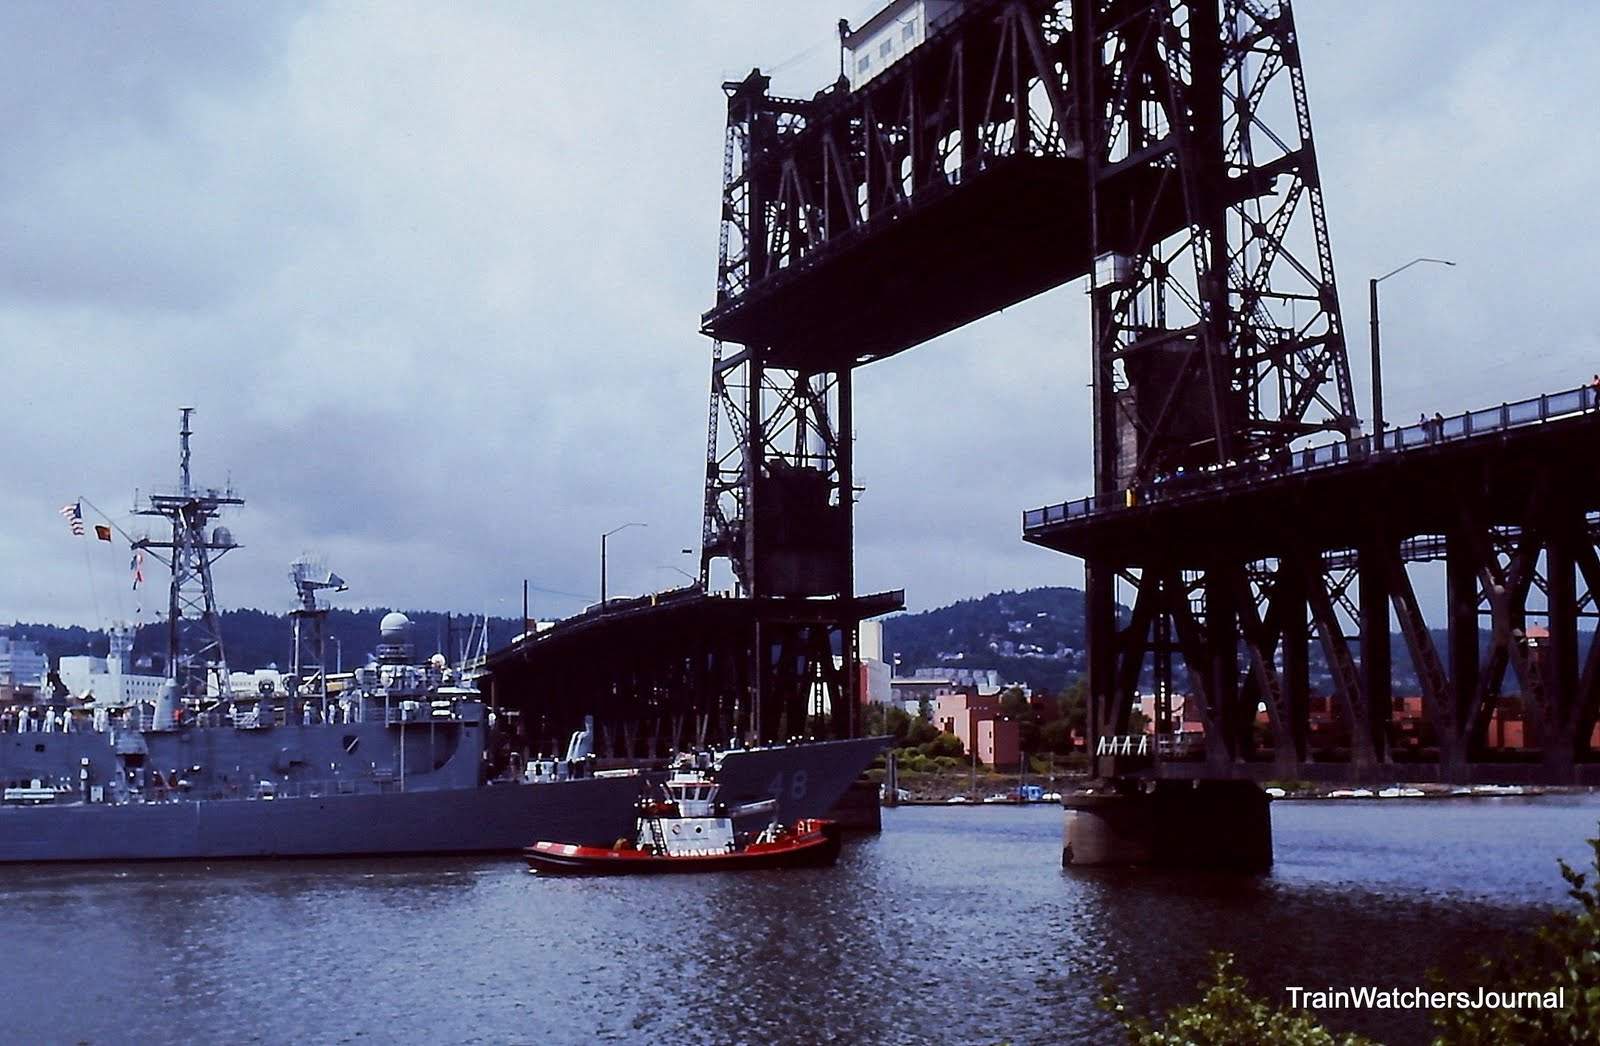 TrainWatchersJournal Fleet Week  Portland Rose Festival  June 1995